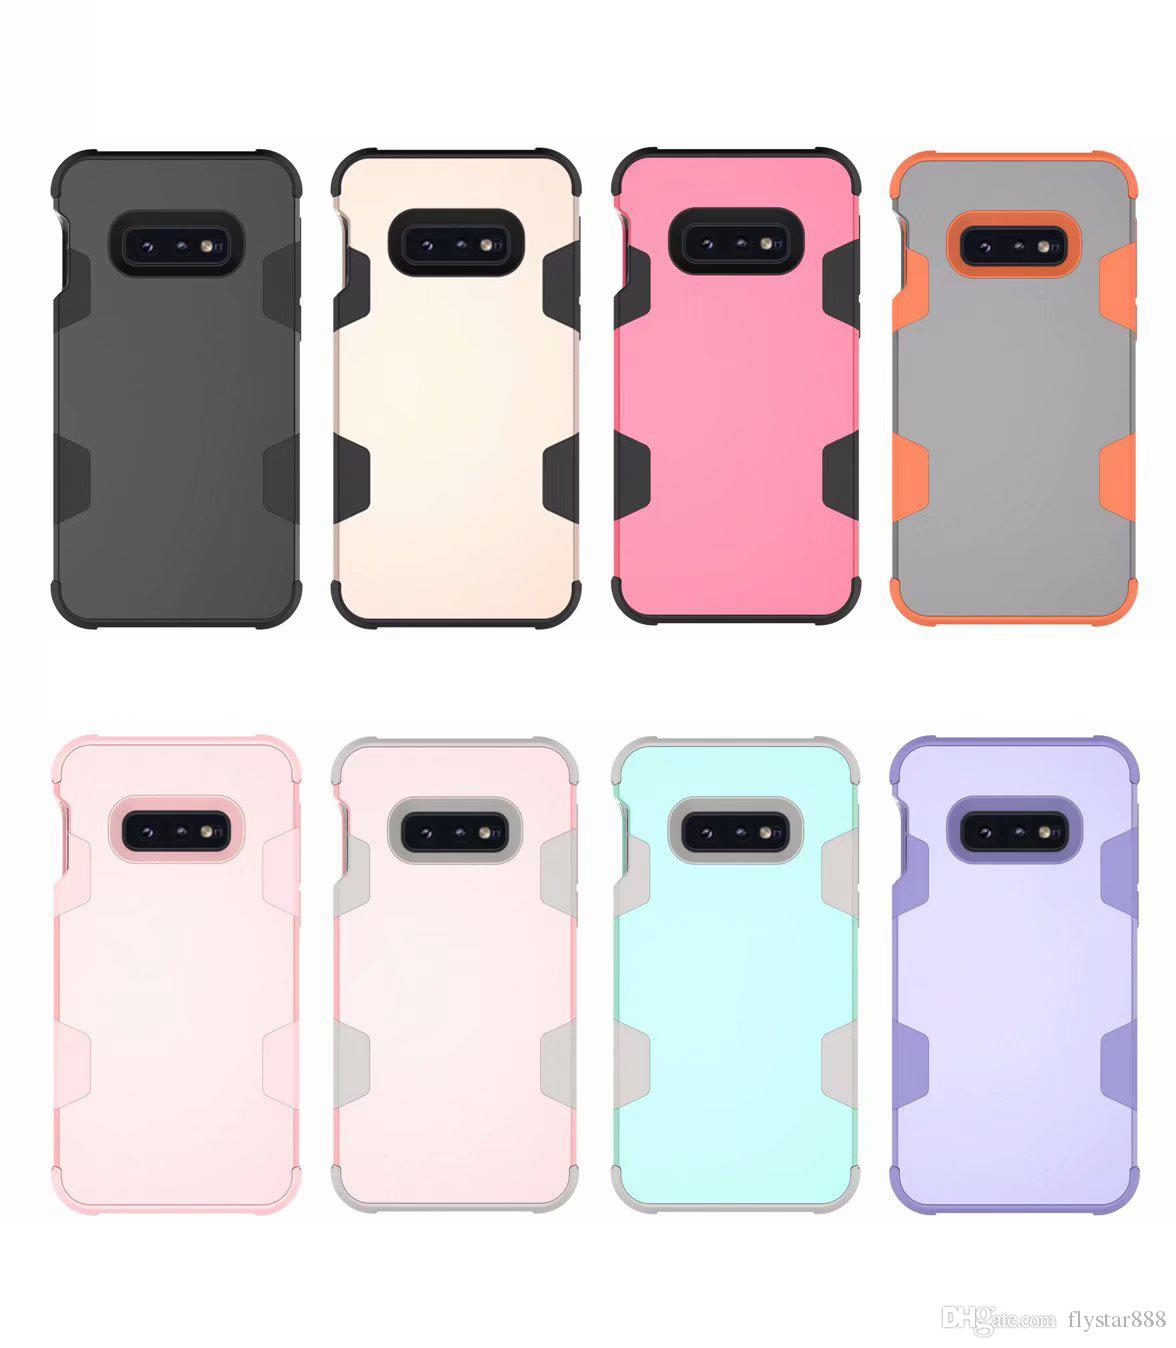 3 in 1 Robot Hybrid TPU Commuter Shockproof Armor Case Cover For iPhone Xs Max XR XS 8 7 6S Plus Samsung S10 S9 Plus Note 8 9 opp package